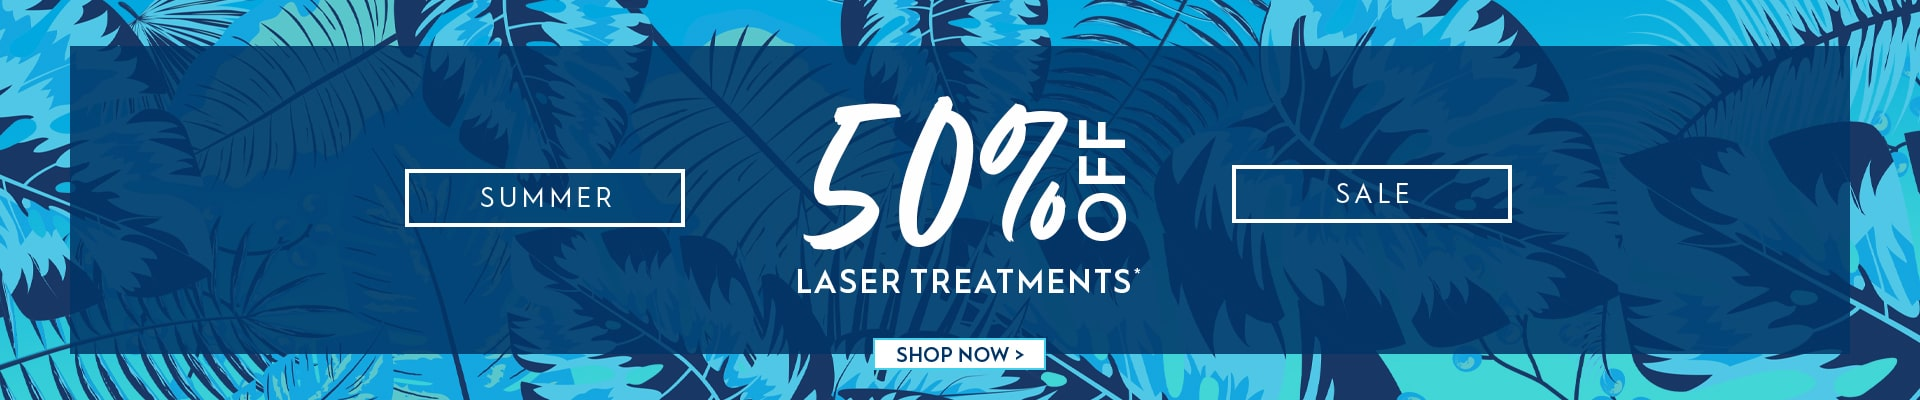 Australian Skin Clinics Summer Sale - 50% off Laser Hair Removal + 25% off Cryo Fat Freezing